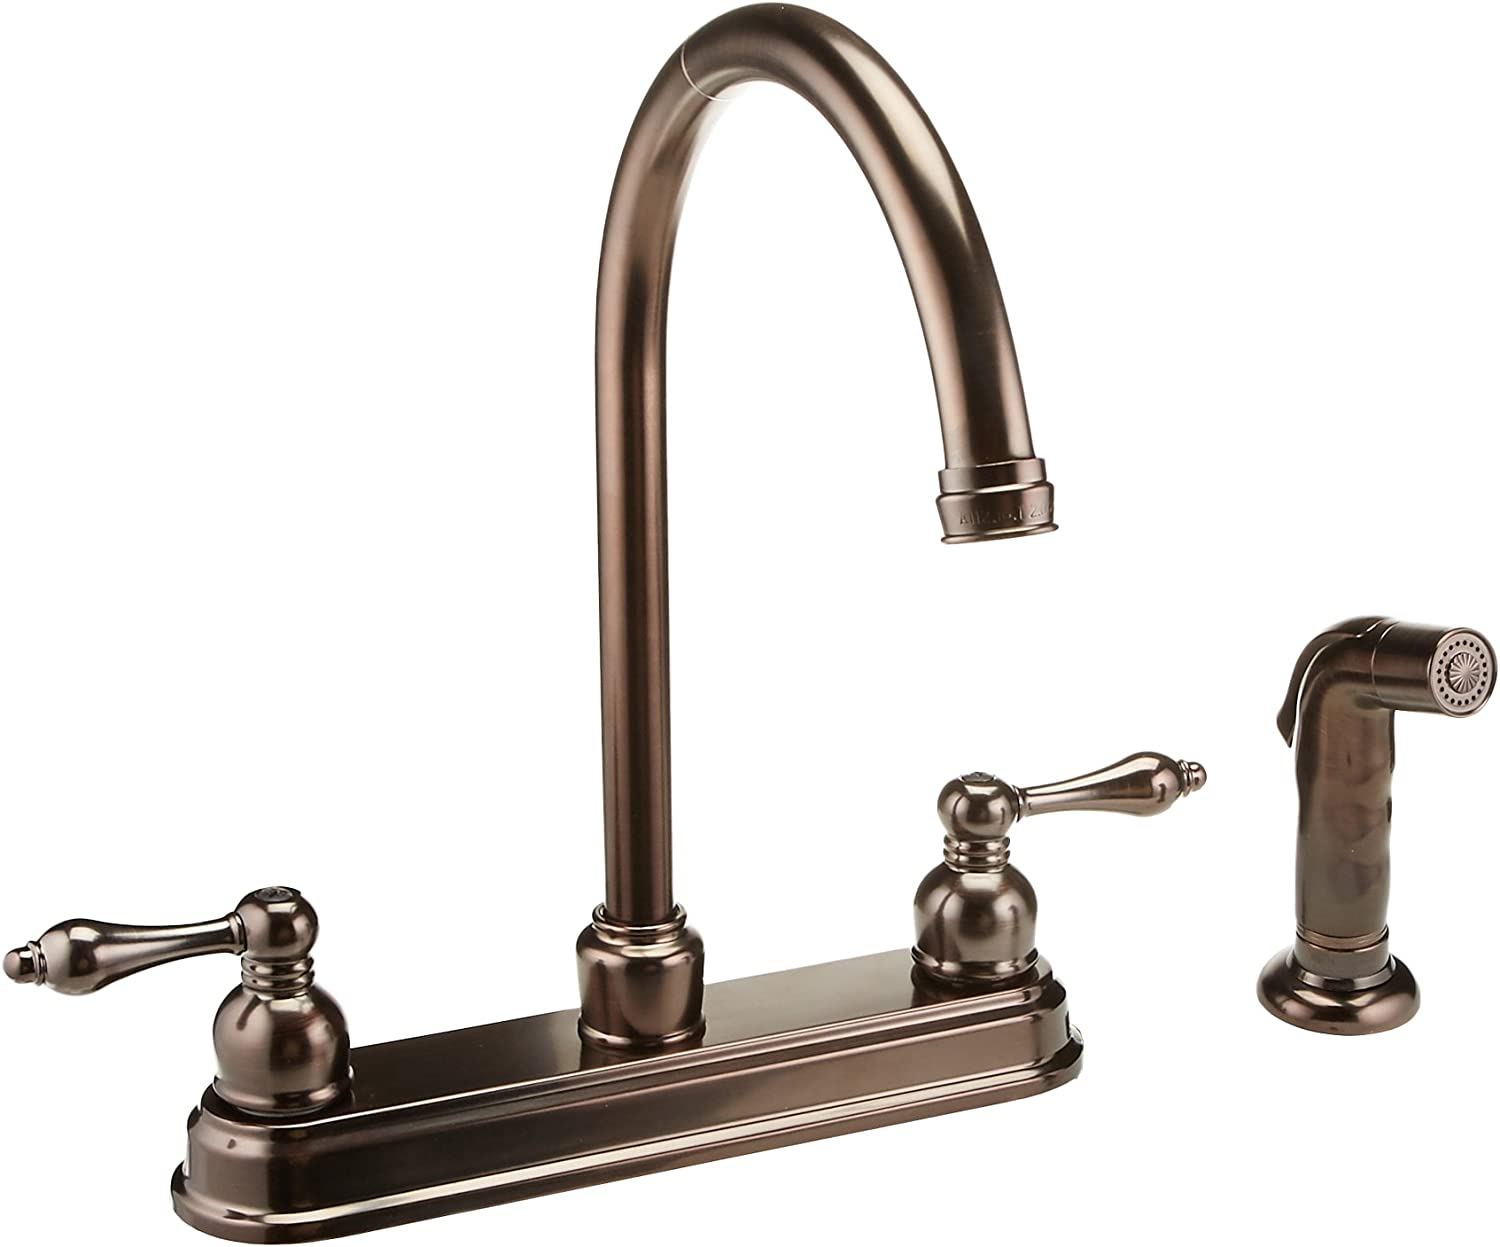 Hardware House 122672 Inventory cleanup selling sale Cheap mail order shopping Kitchen Faucet Rubbed Bronze Oil